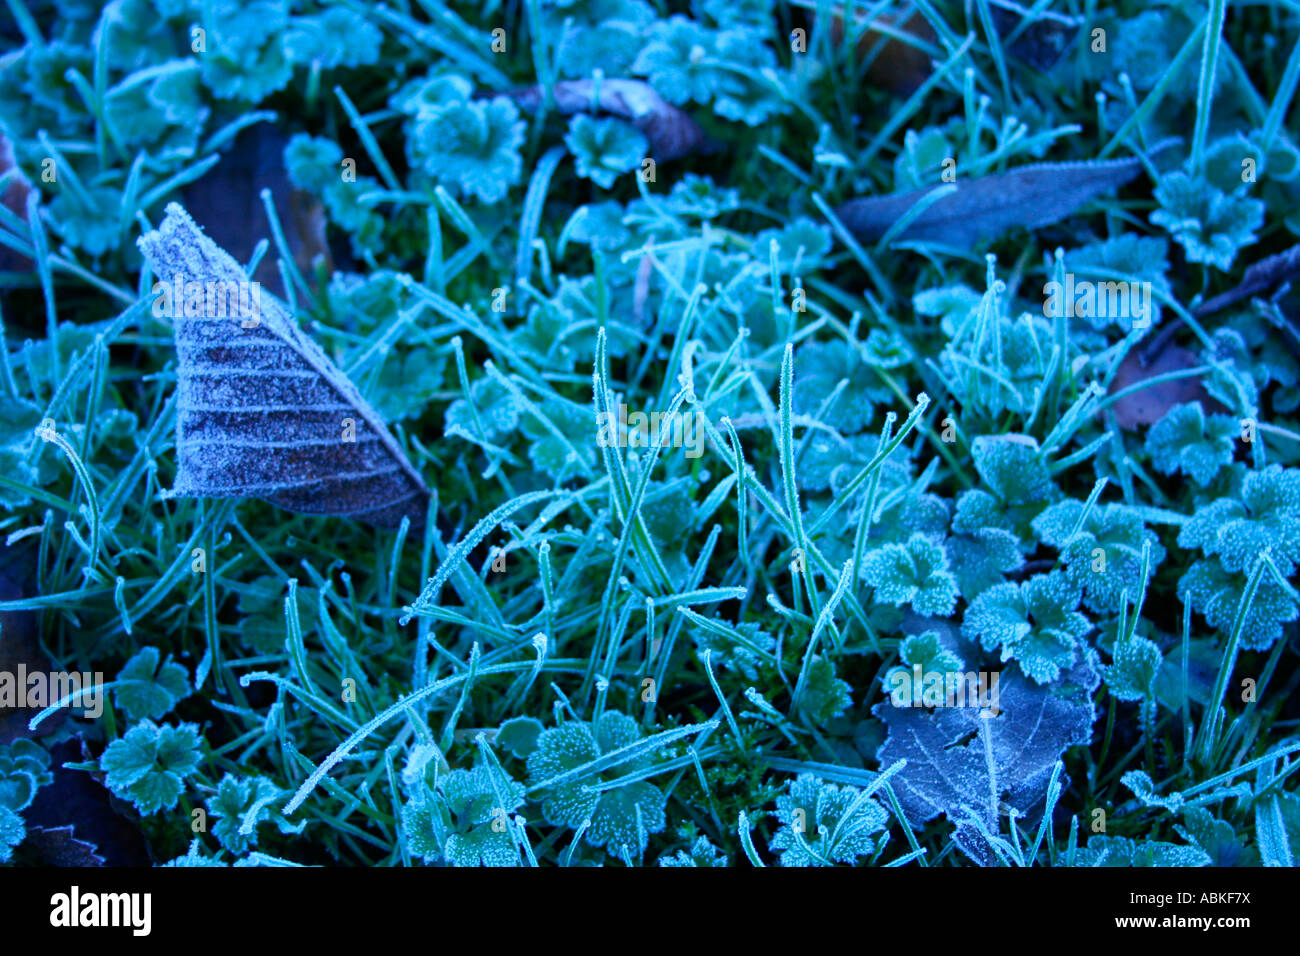 Frost on grass and leaves in winter - Stock Image